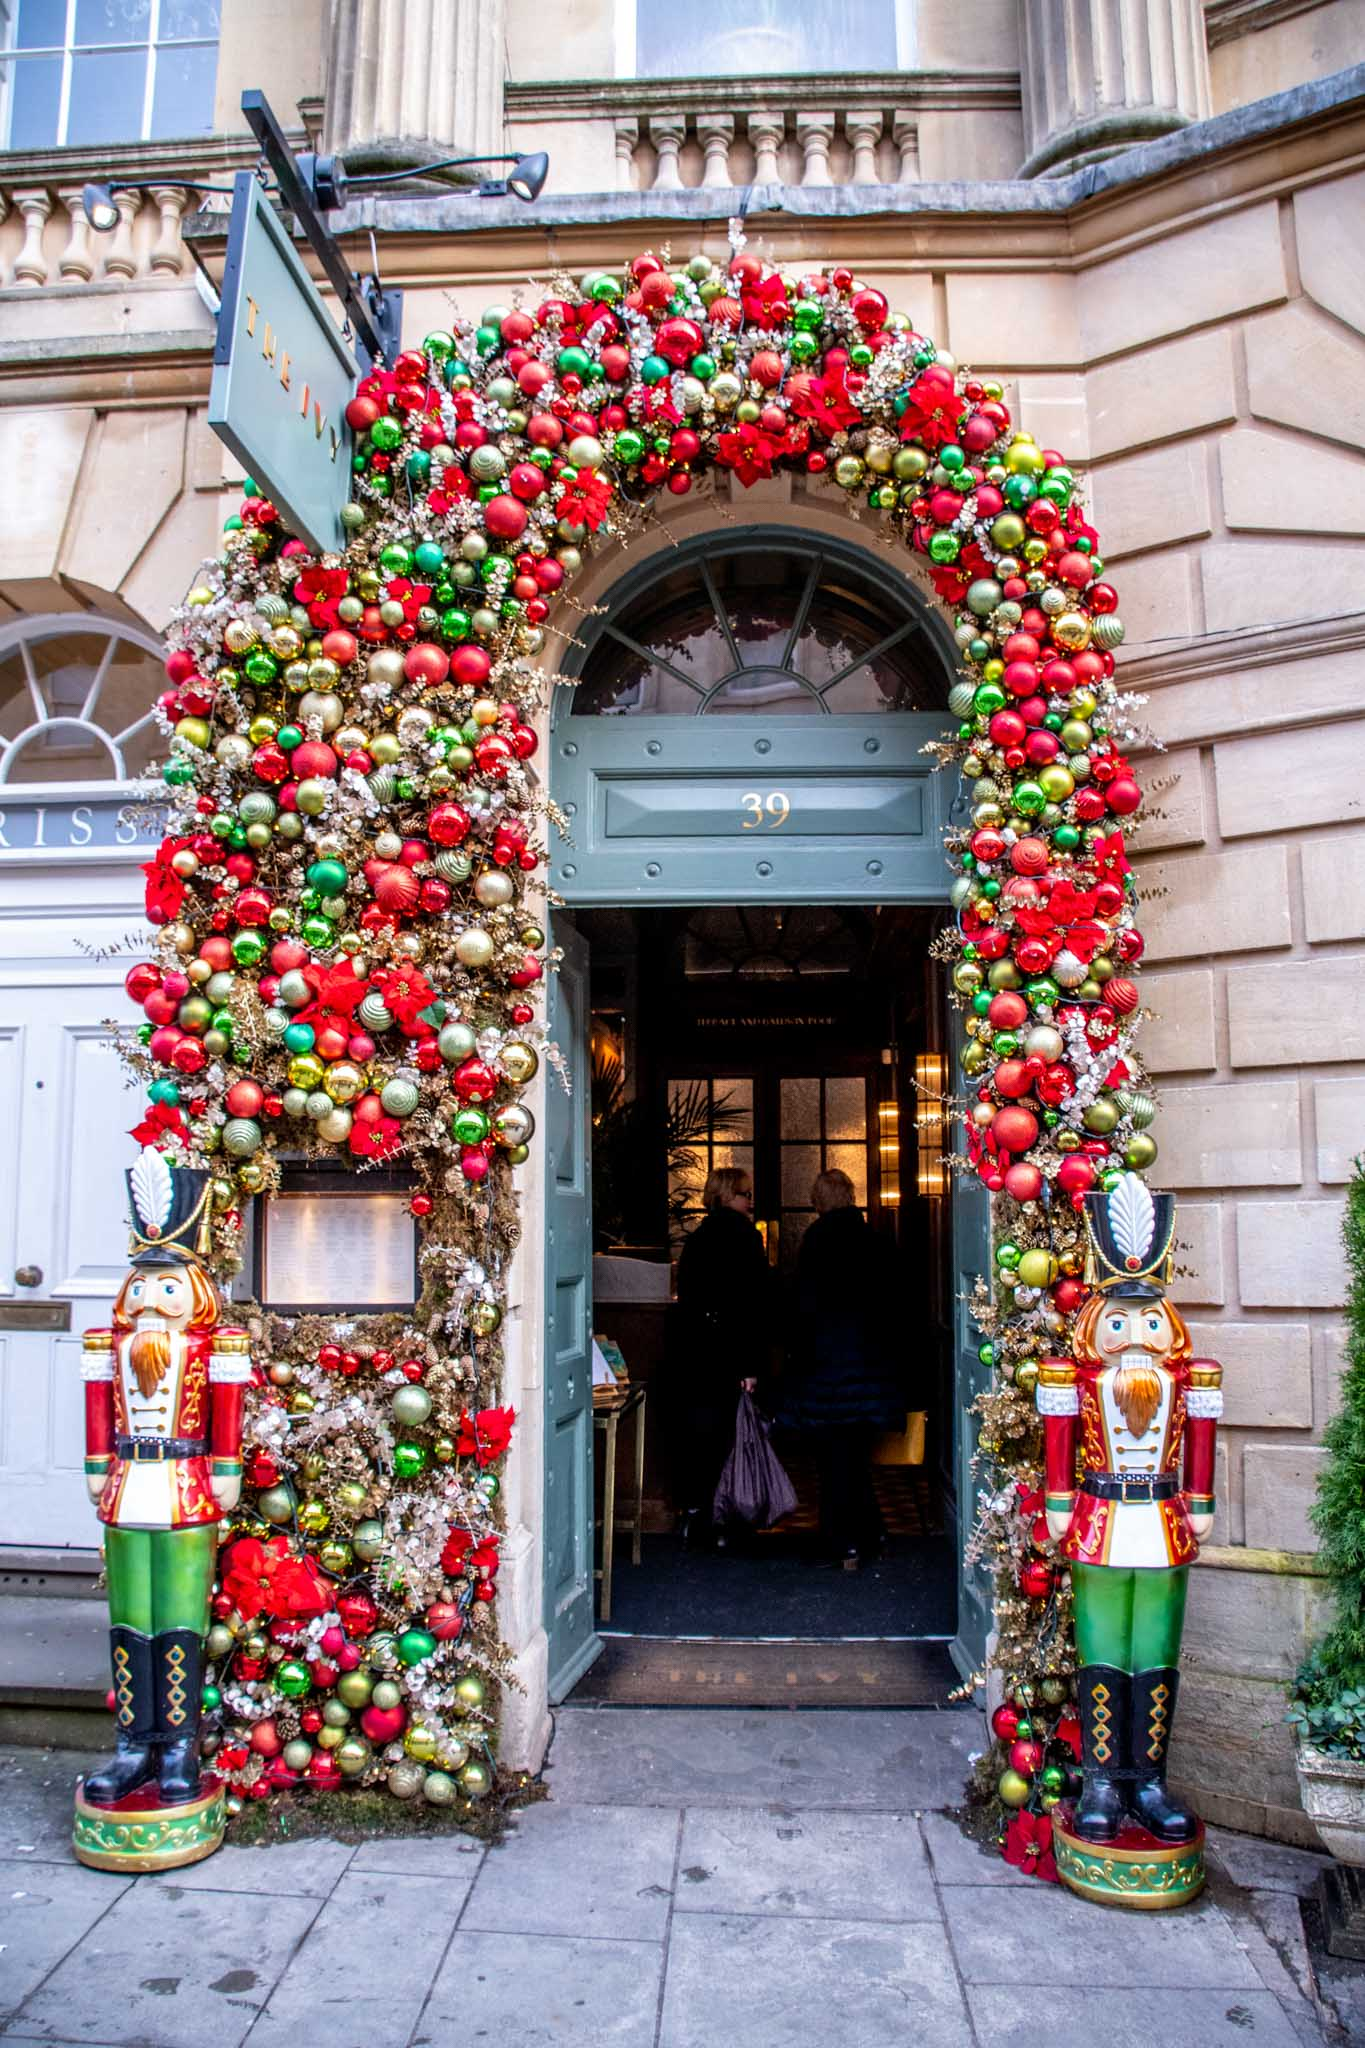 Doorway of The Ivy covered in red and green ornaments and flanked by two nutcrackers